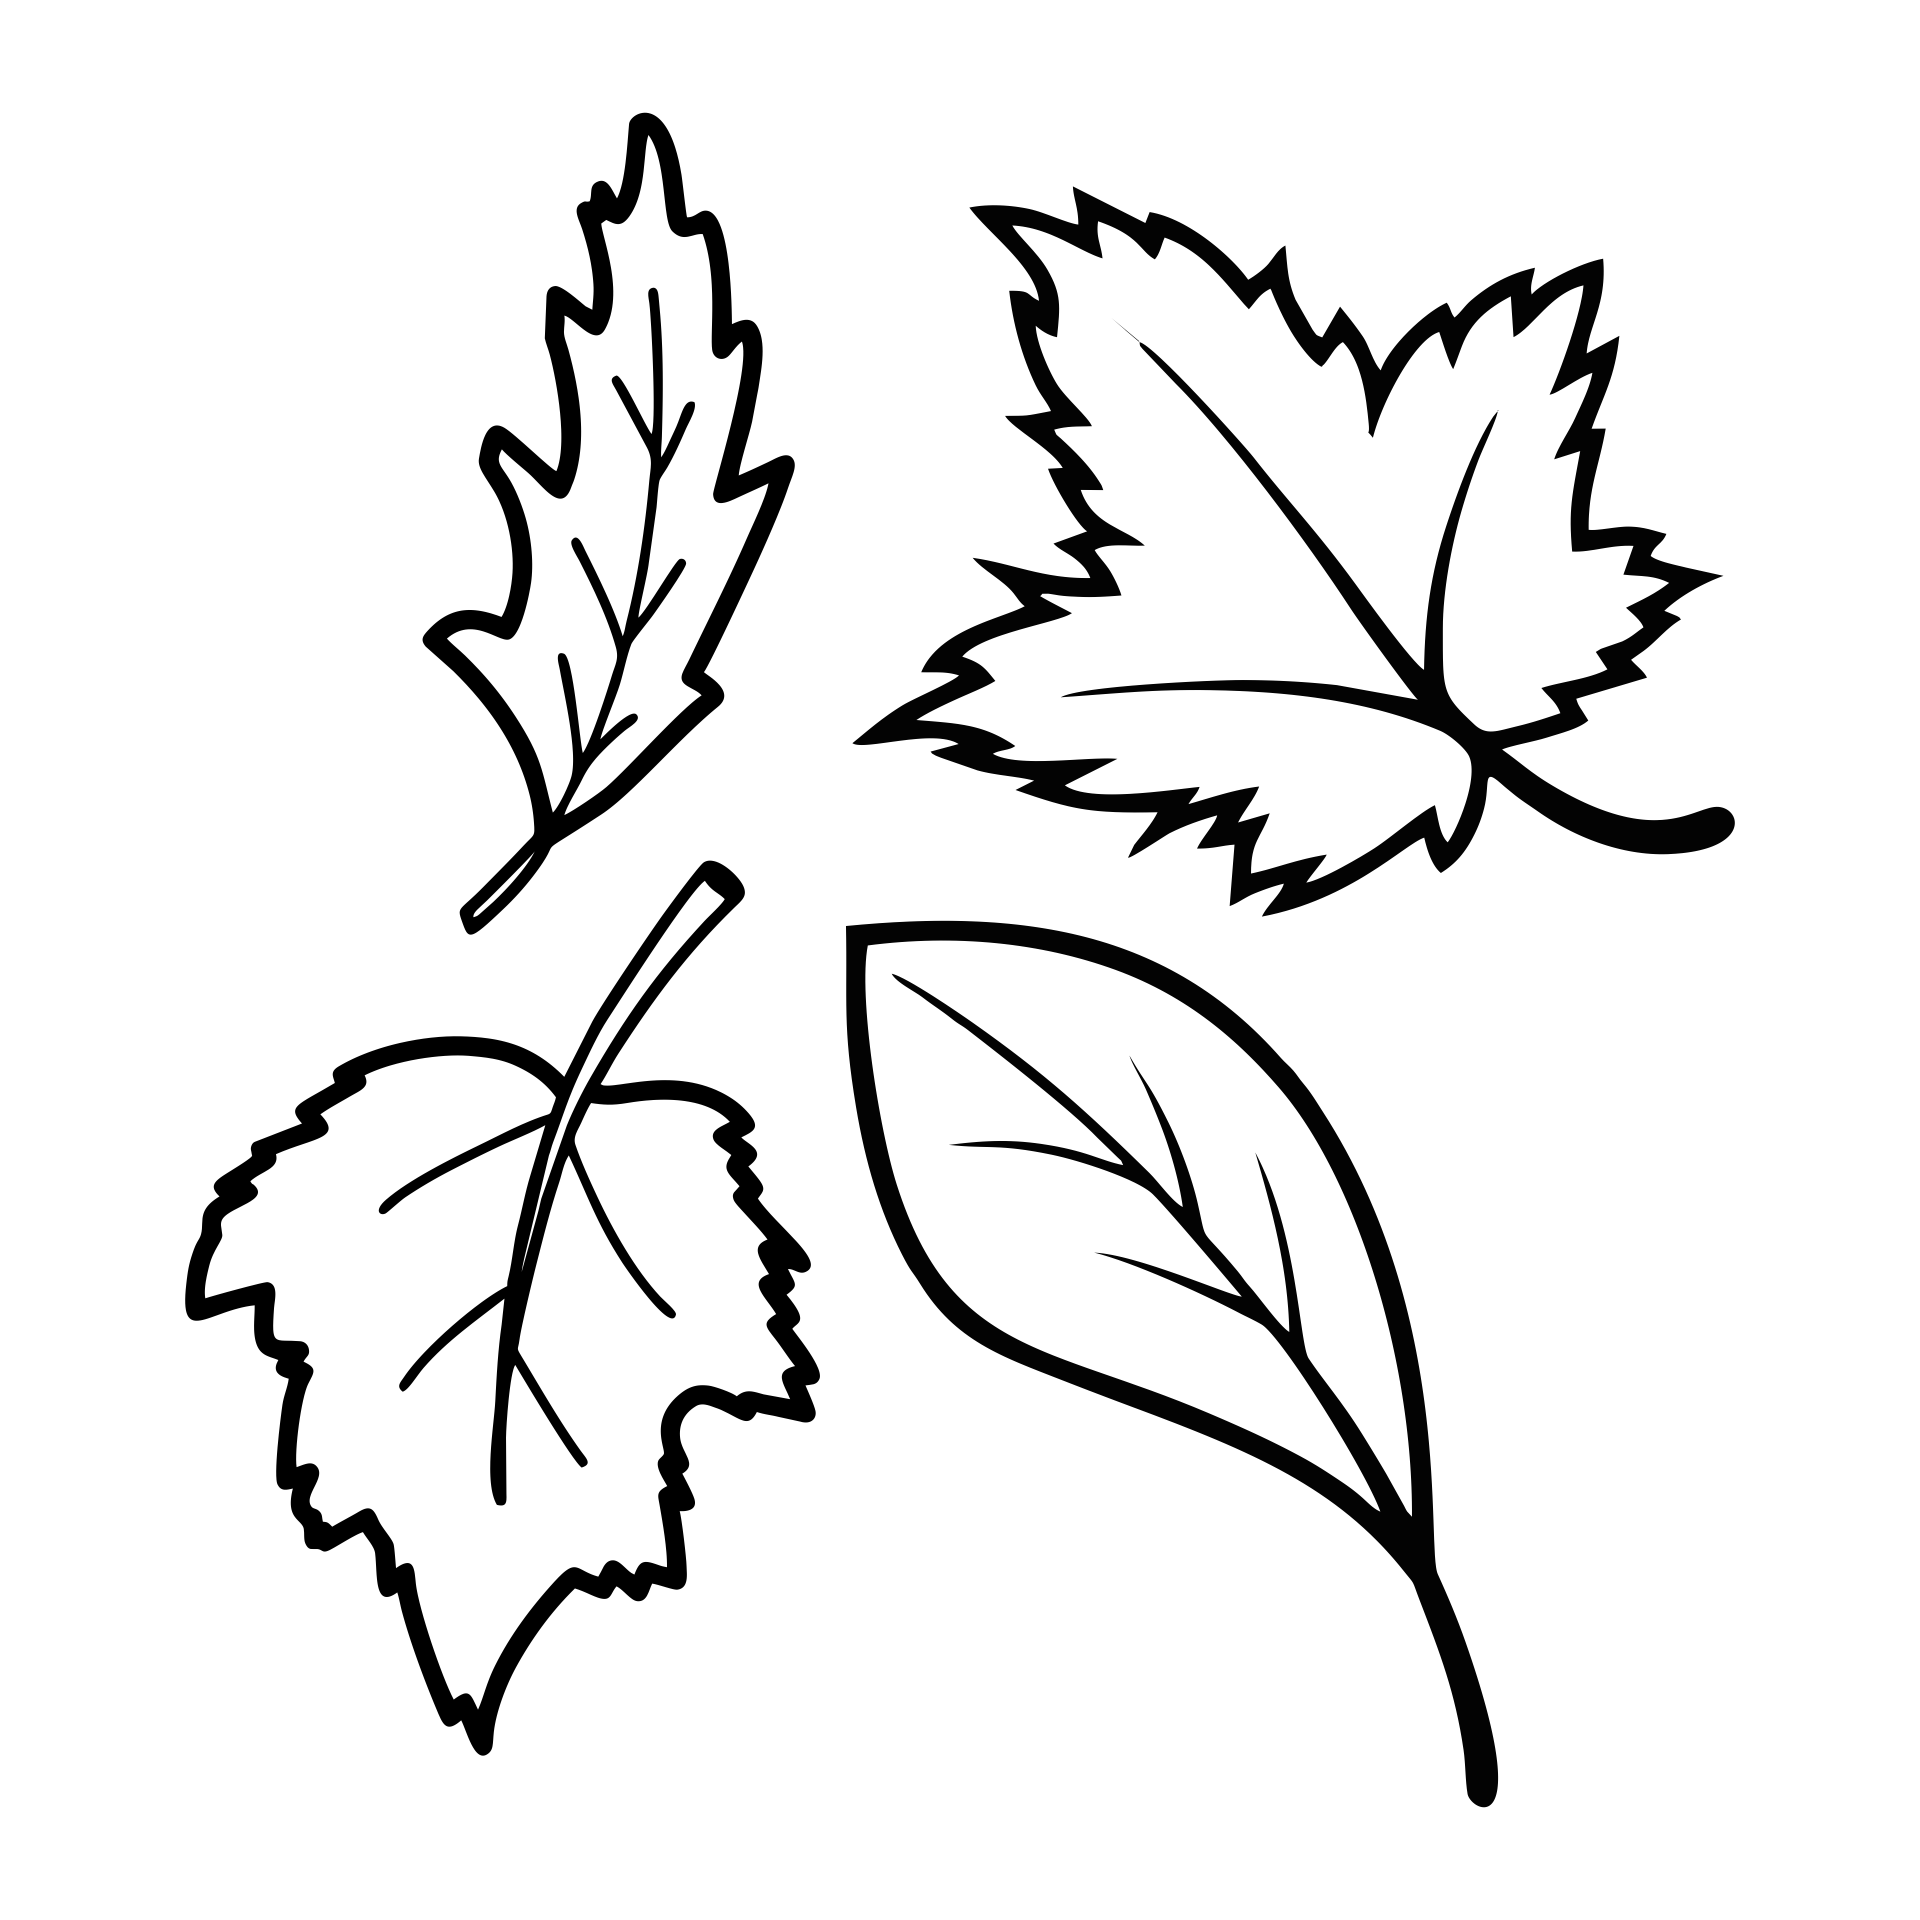 7 Images of Fall Leaves Worksheets Printables